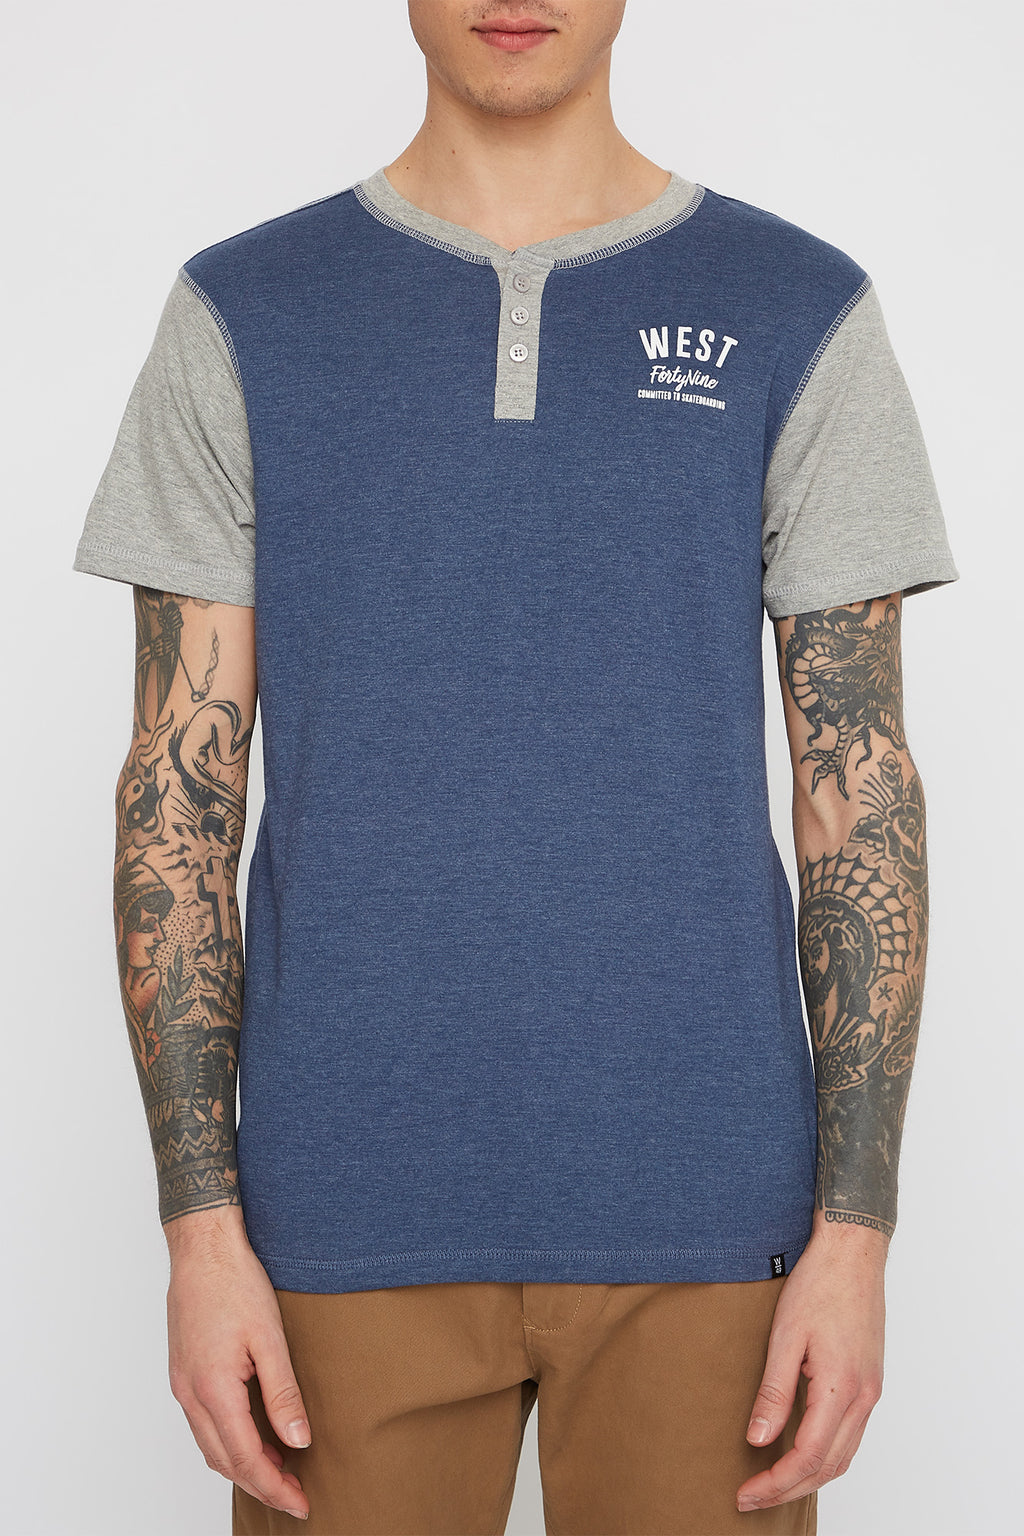 West49 Mens Henley T-Shirt